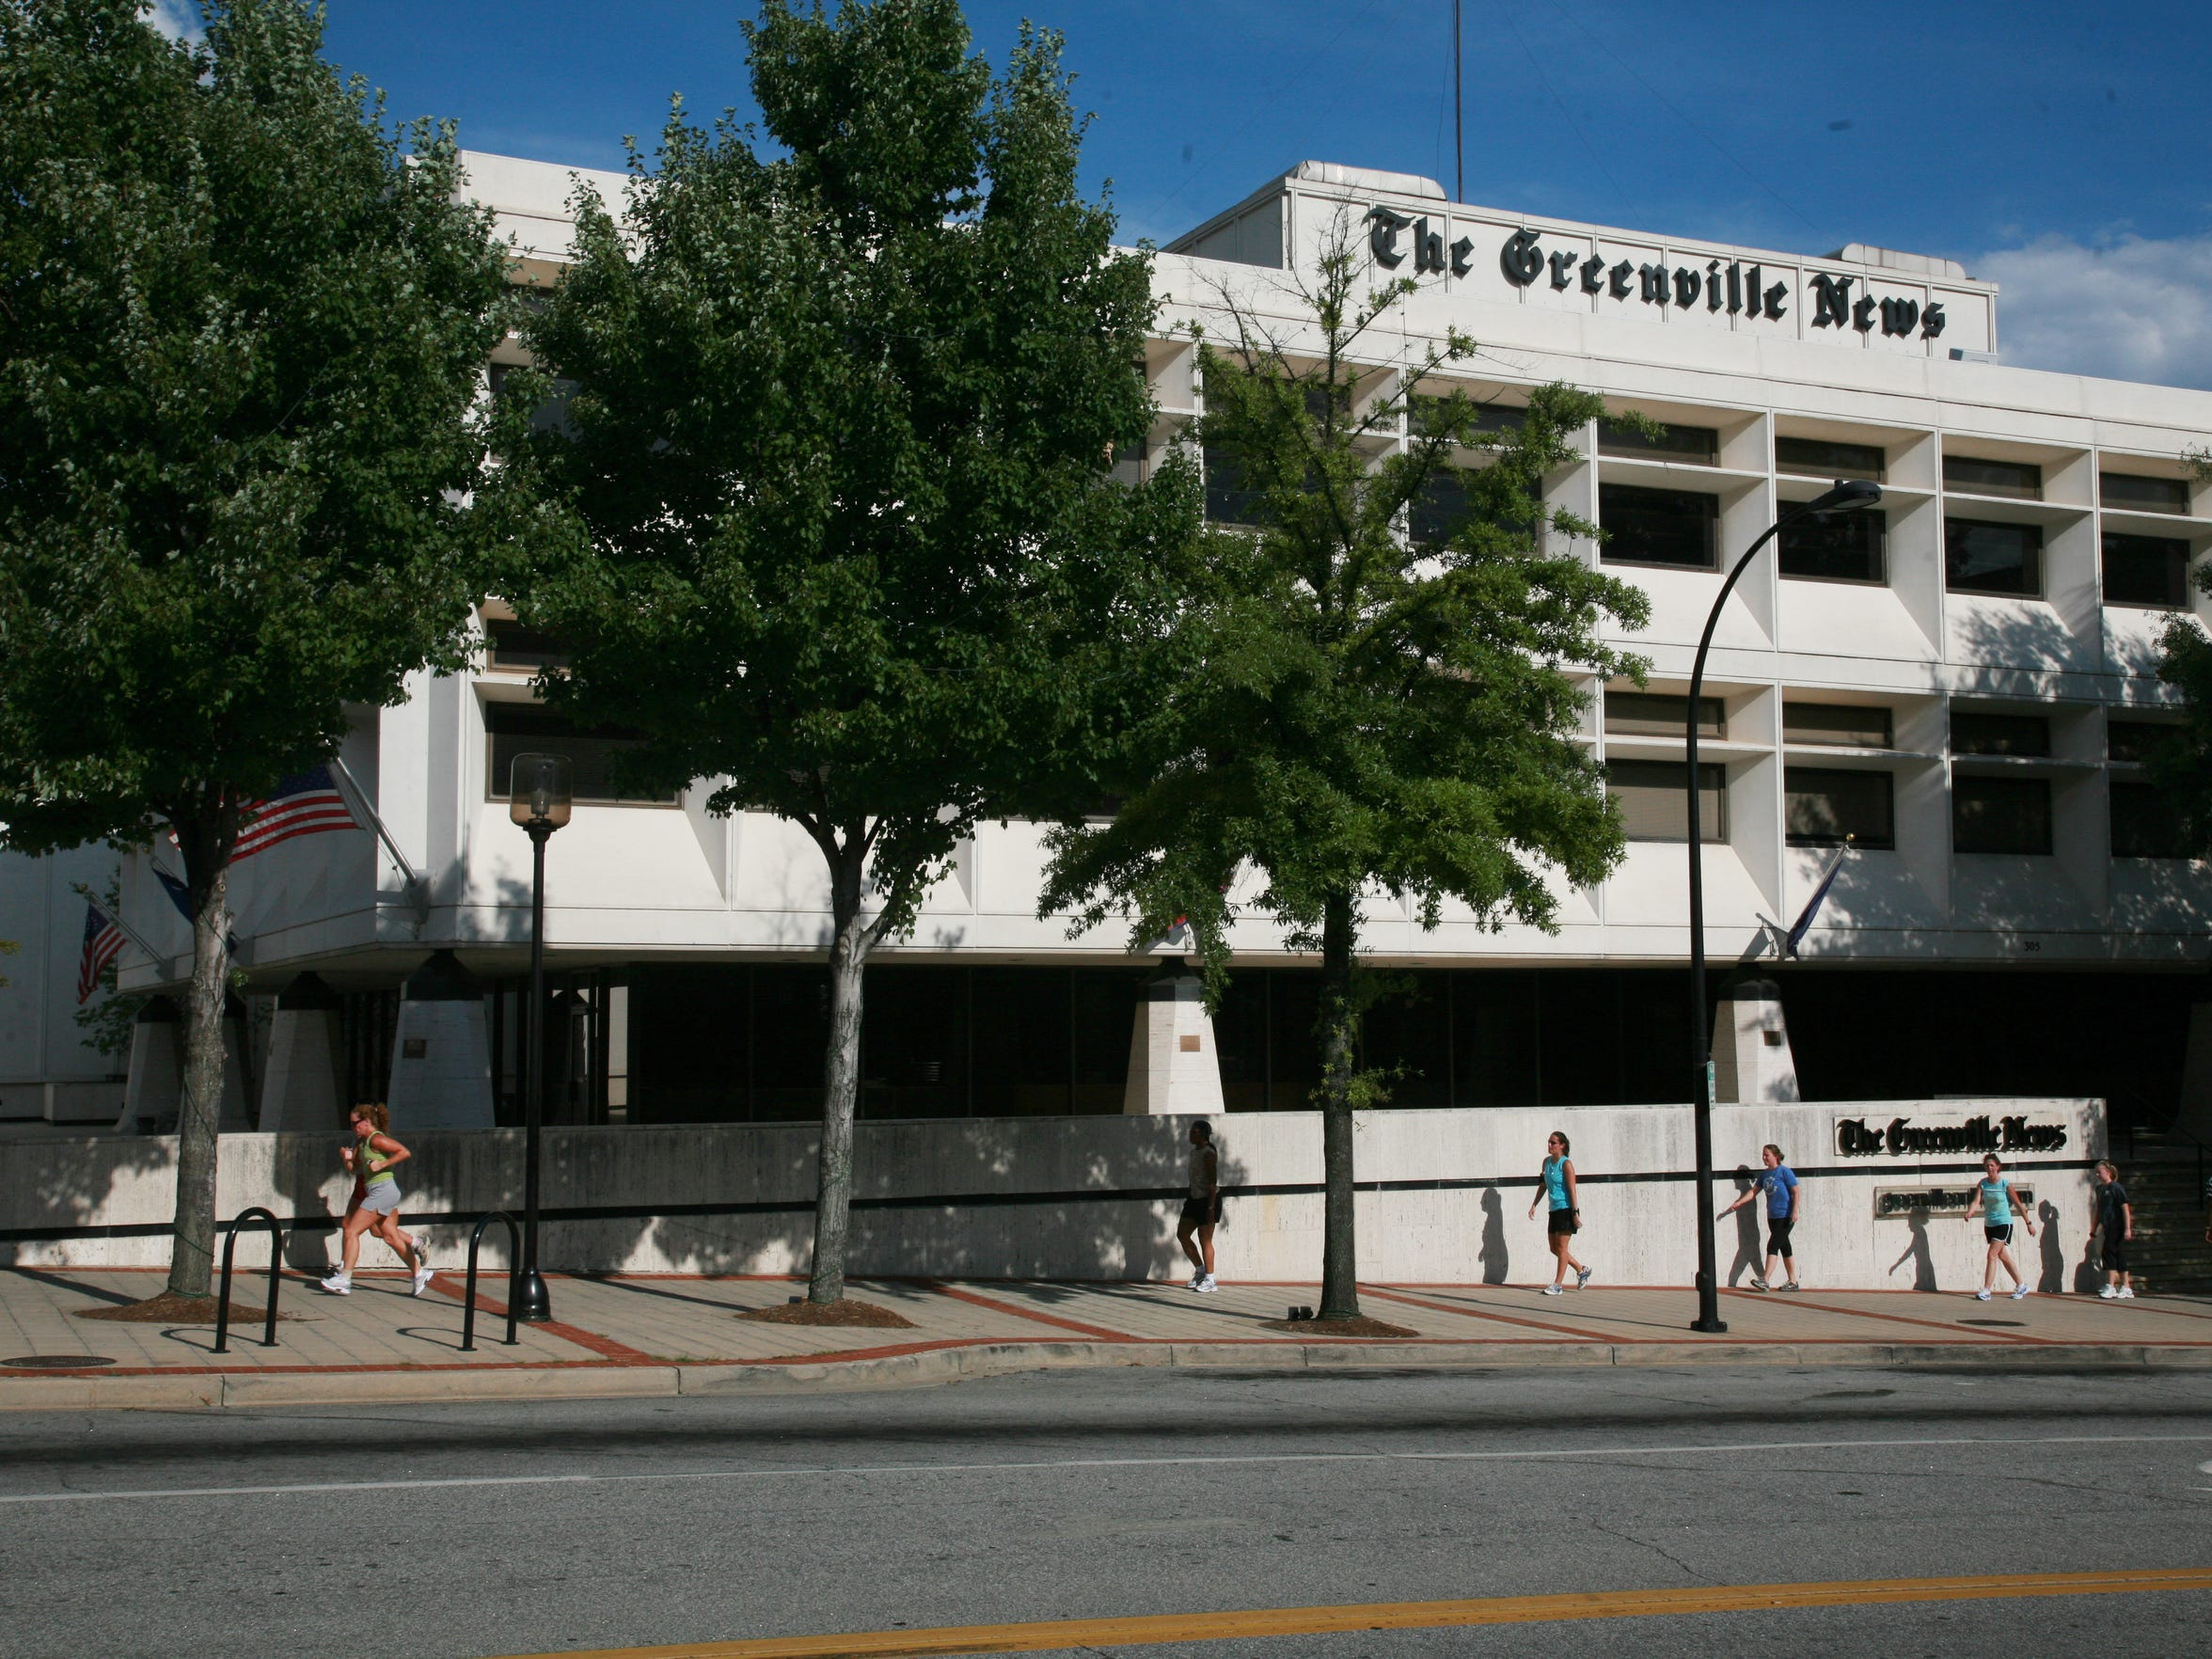 The Greenville News building in downtown Greenville.